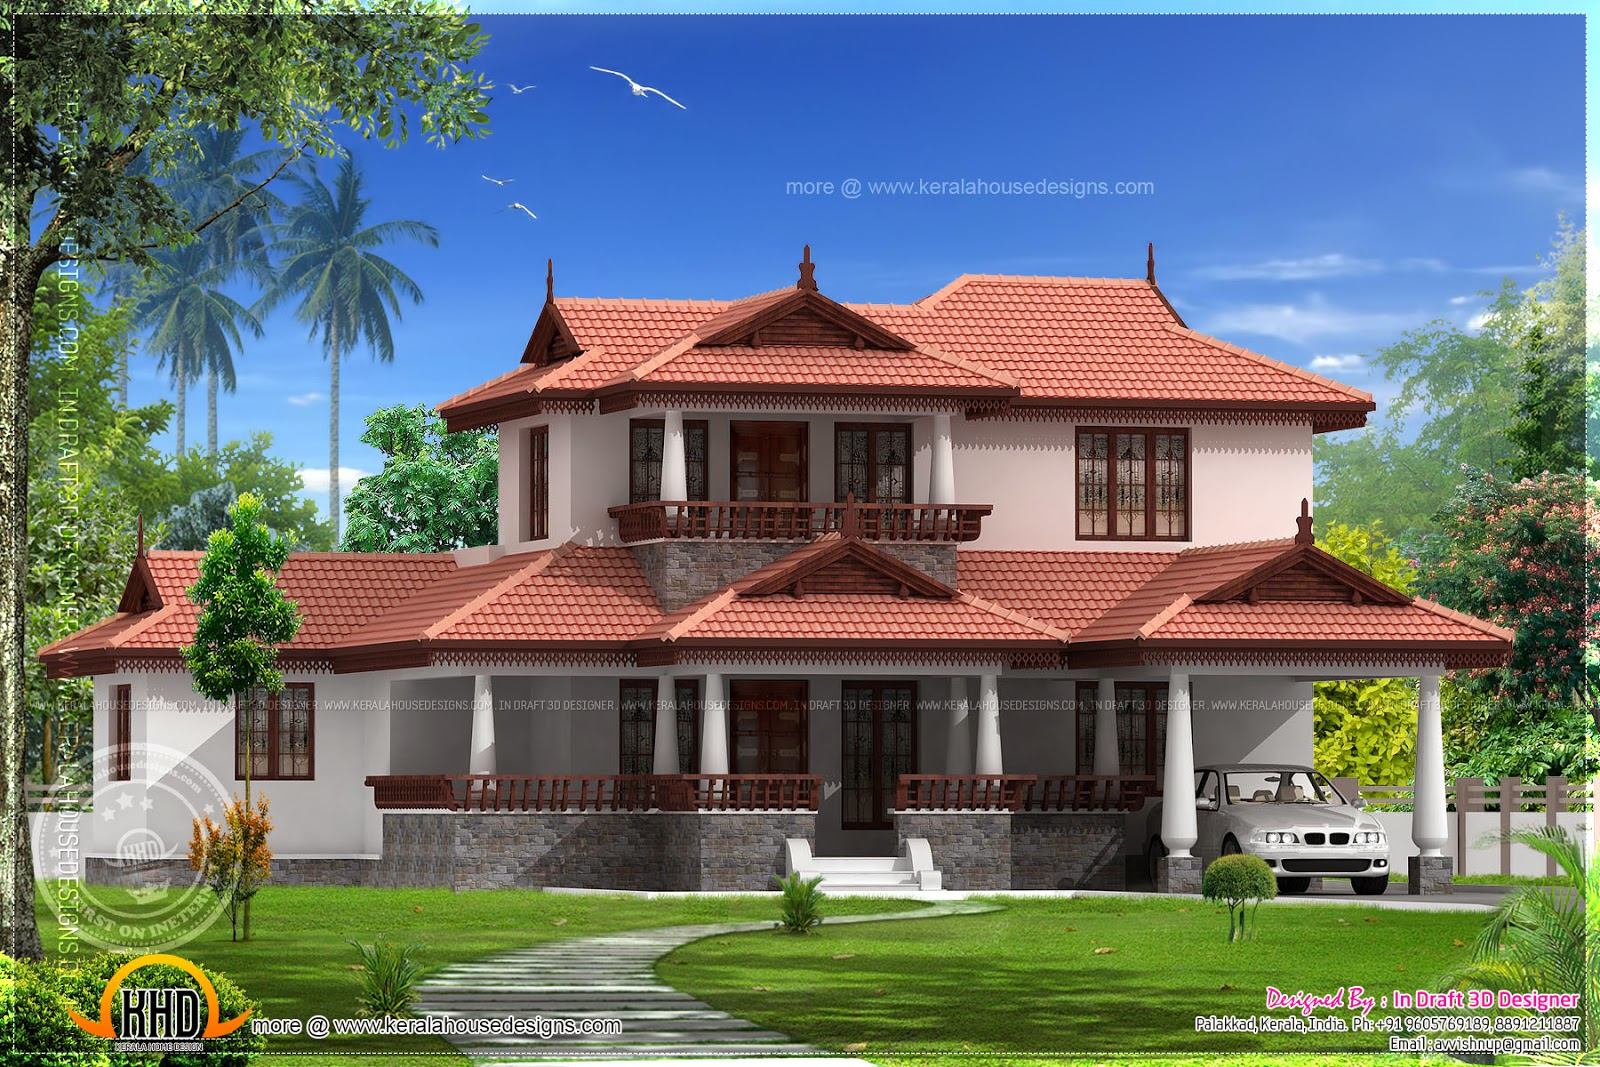 3 bedroom kerala model home elevation kerala home design for Kerala house model plan